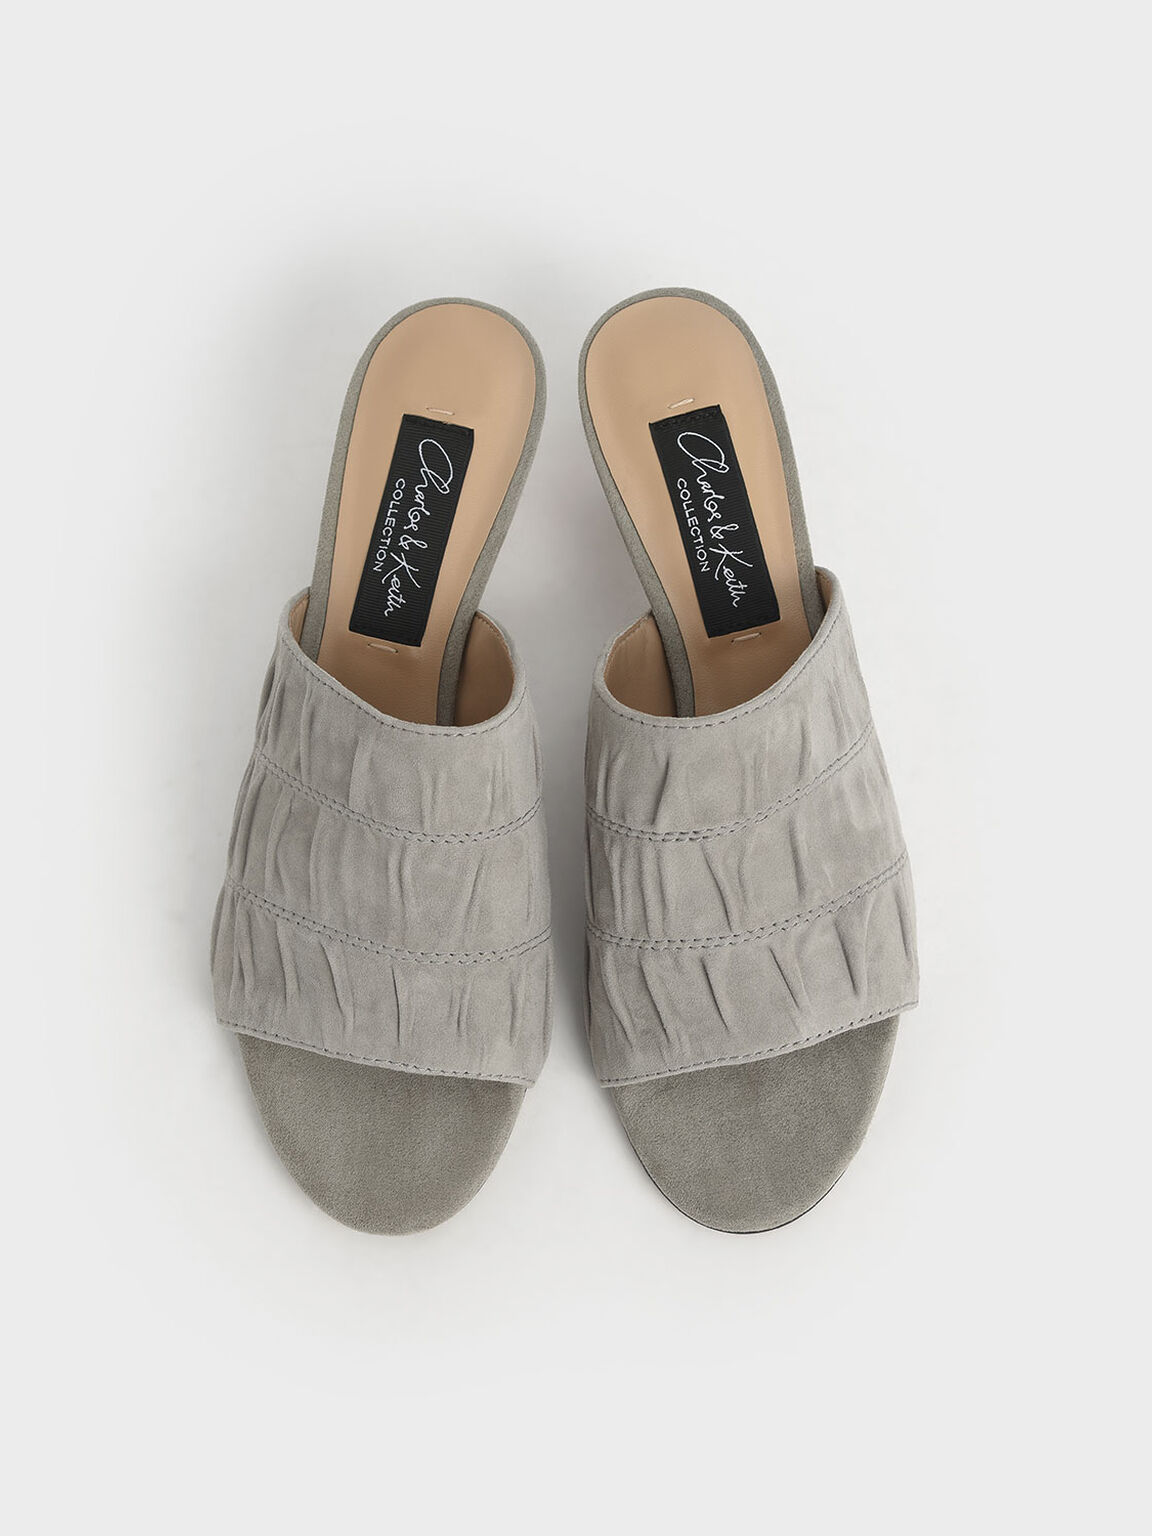 Embellished Heel Ruched Mules (Kid Suede), Sage Green, hi-res